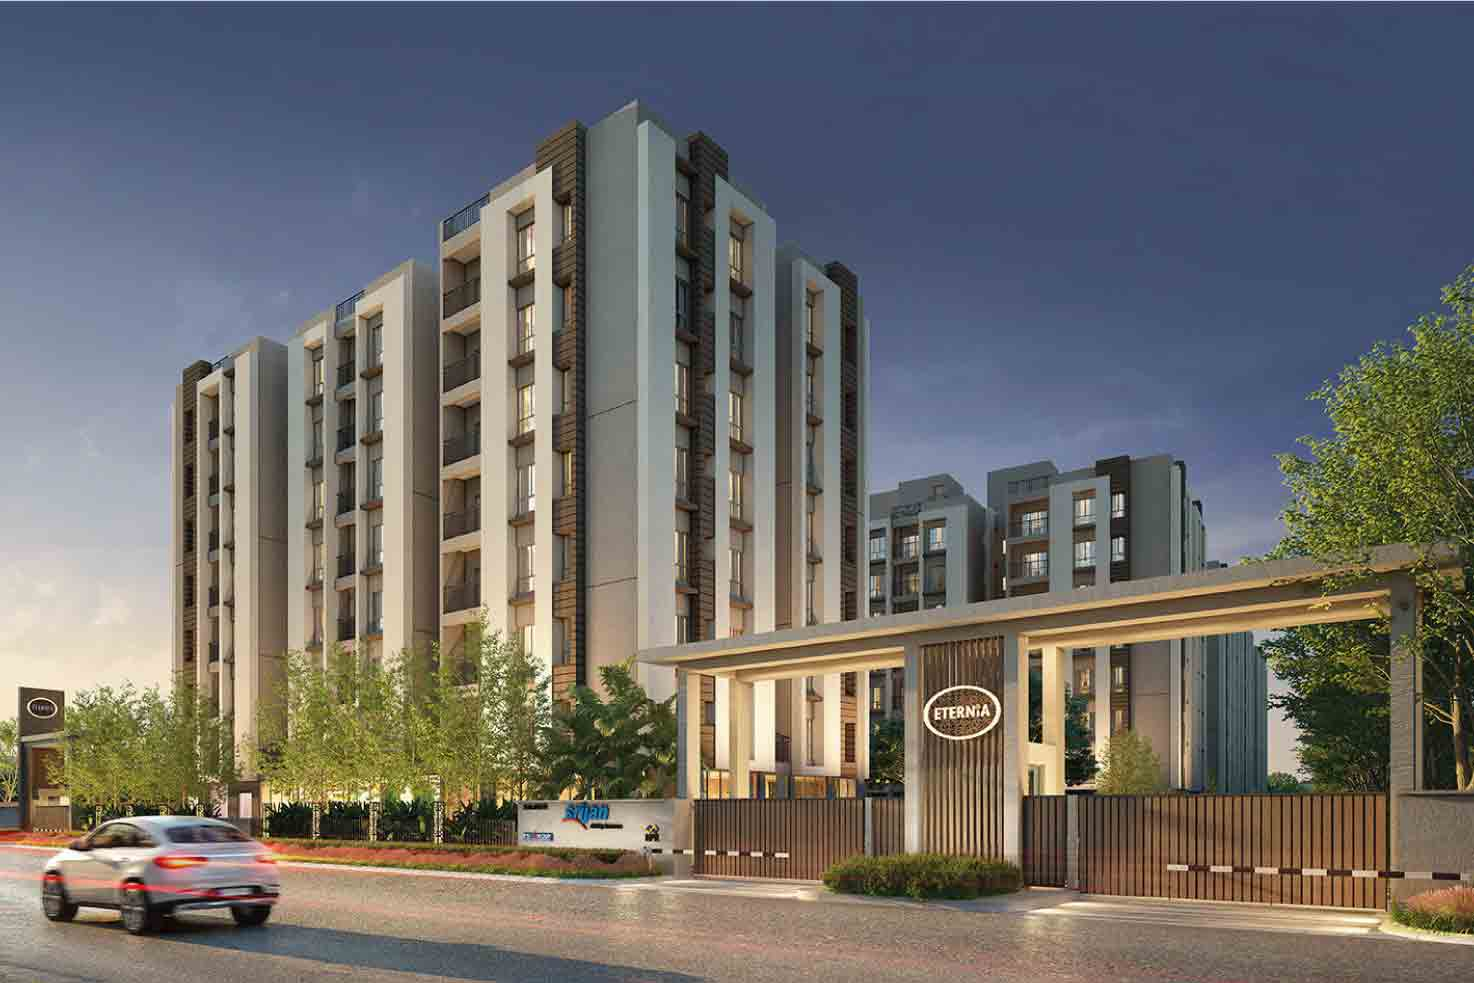 2 BHK Flats in Madhyamgram